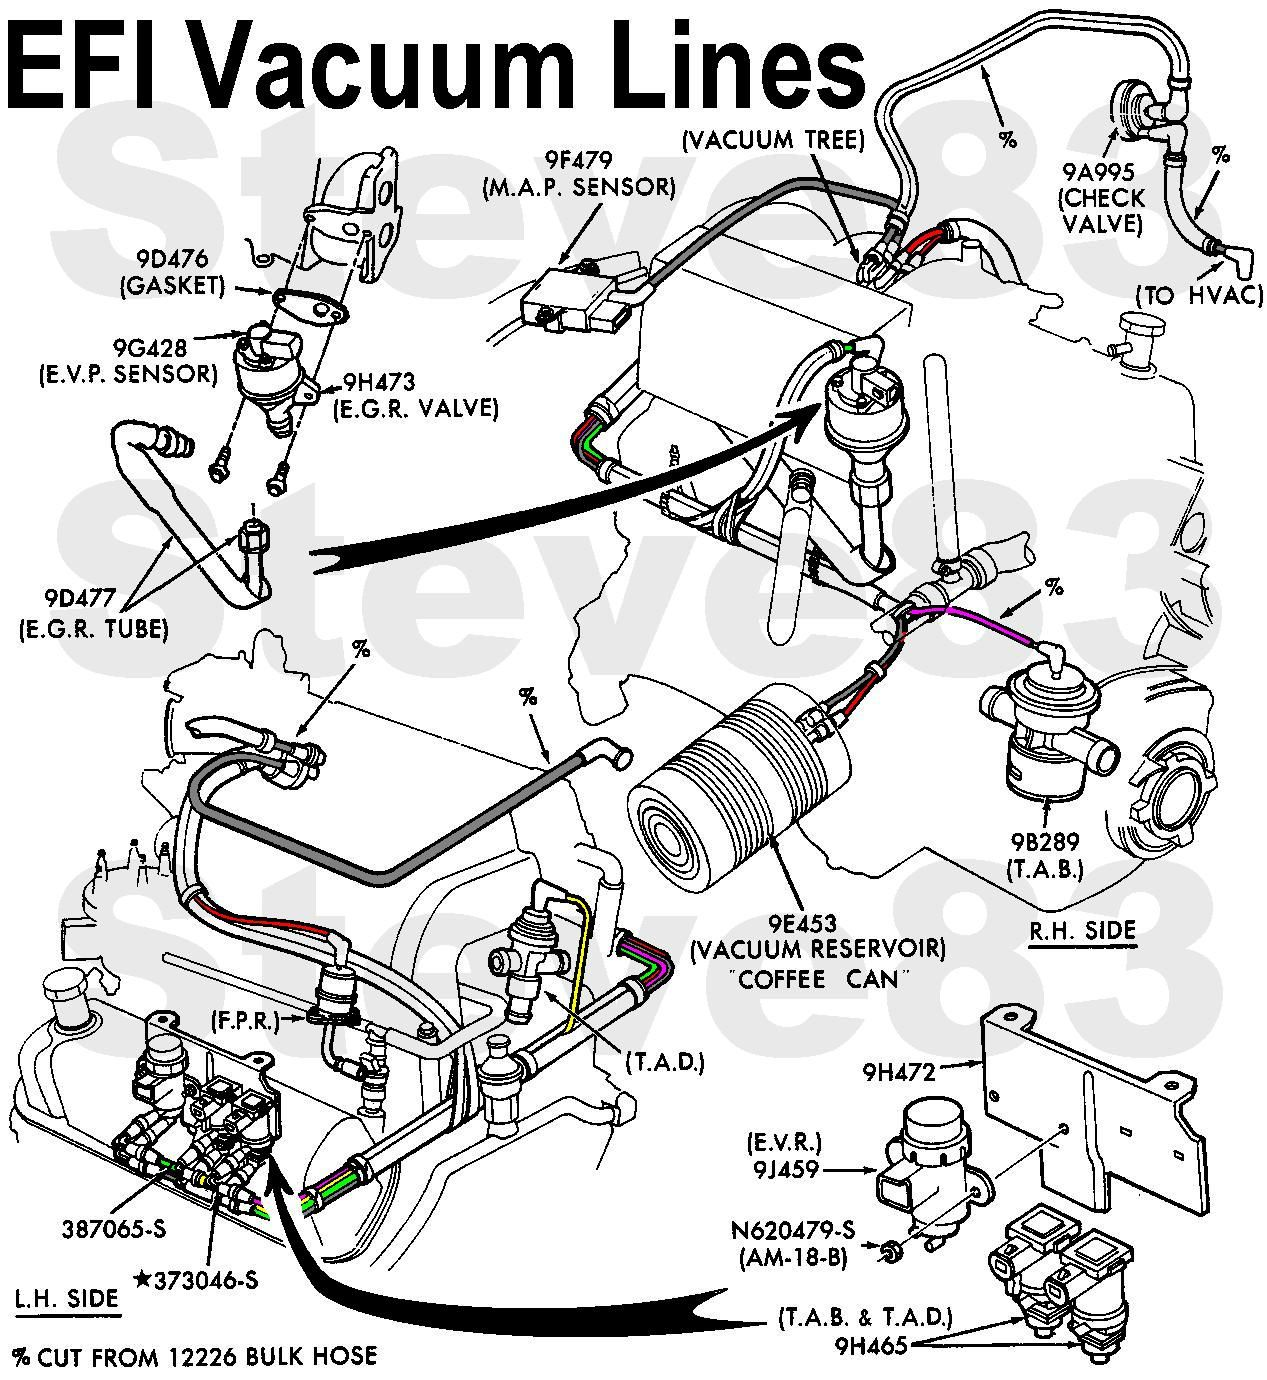 Pickup Truck Coloring Pages further 2004 Chevy Malibu Coolant Temperature Sensor Location likewise 711602 Camshaft Sensor Recall On 7 3 Powerstroke Diseal 2 together with 200957067617 further 2011 Ford F250 Remote Start Wiring Diagram. on 2004 f250 lifted 6 in